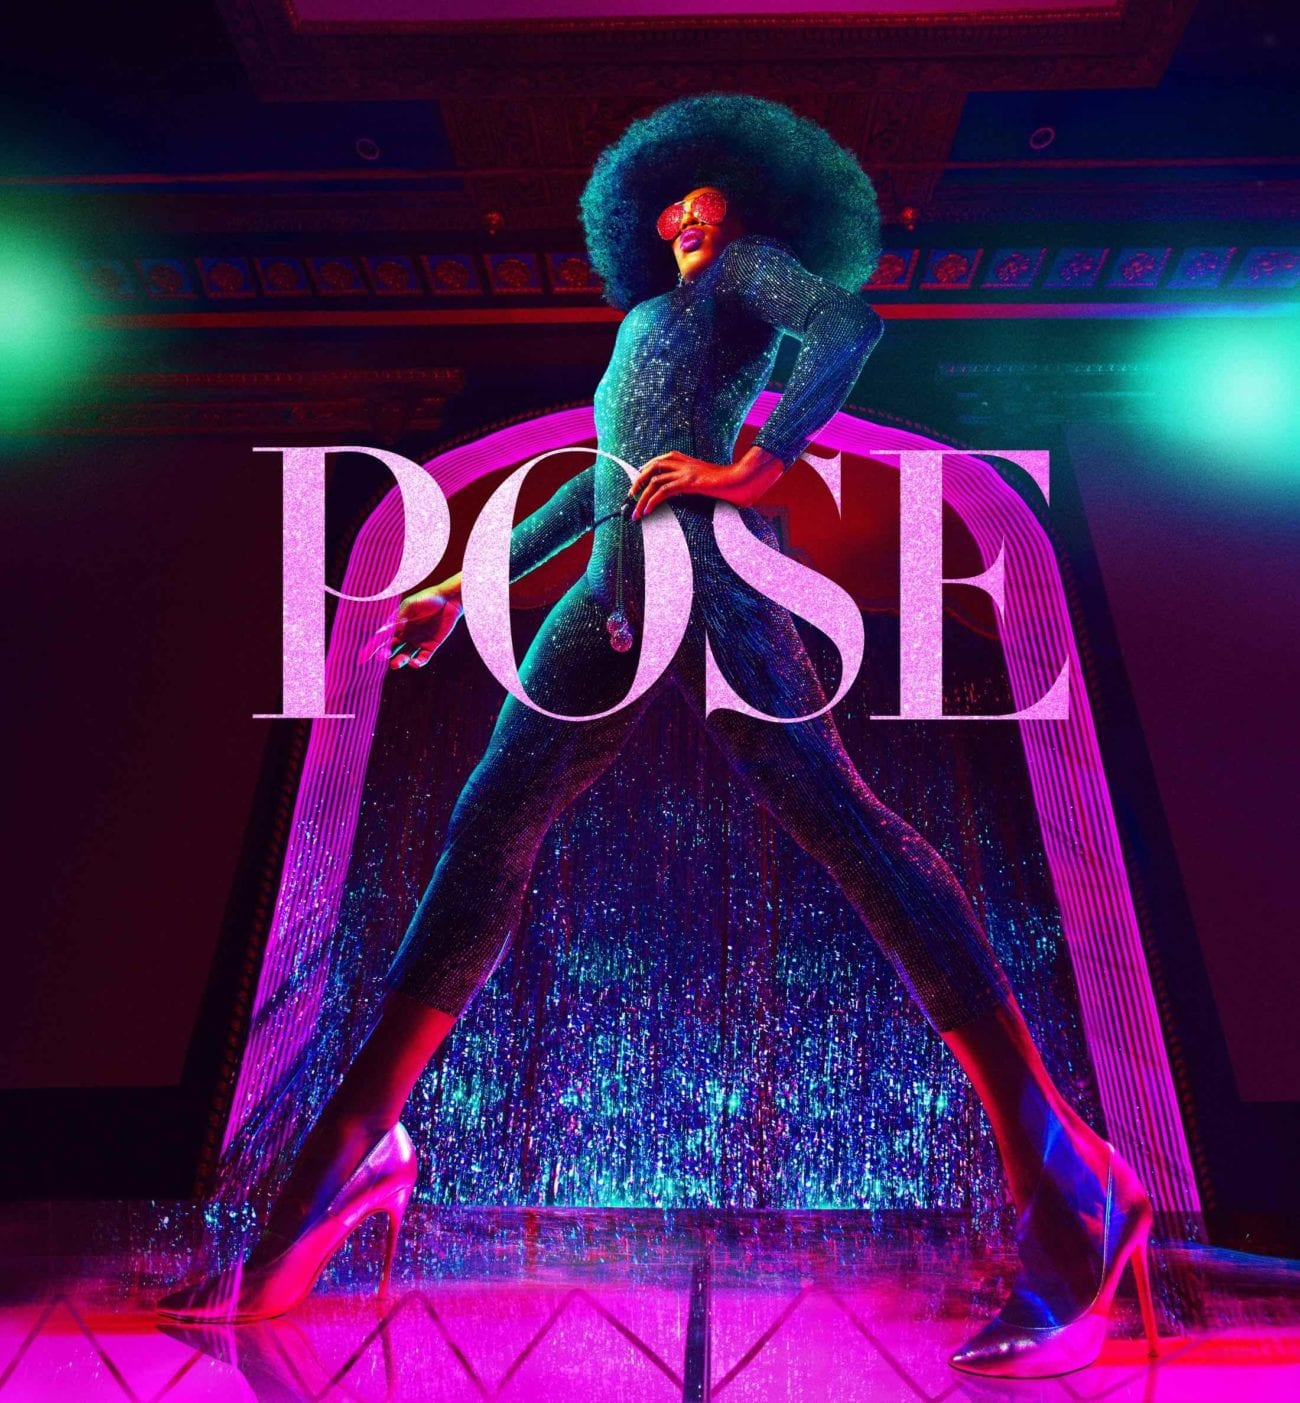 We're delighted the second season of 'Pose' will sashay in over at FX on June 11th. The second teaser for S2 just dropped and we're just crazy about it.